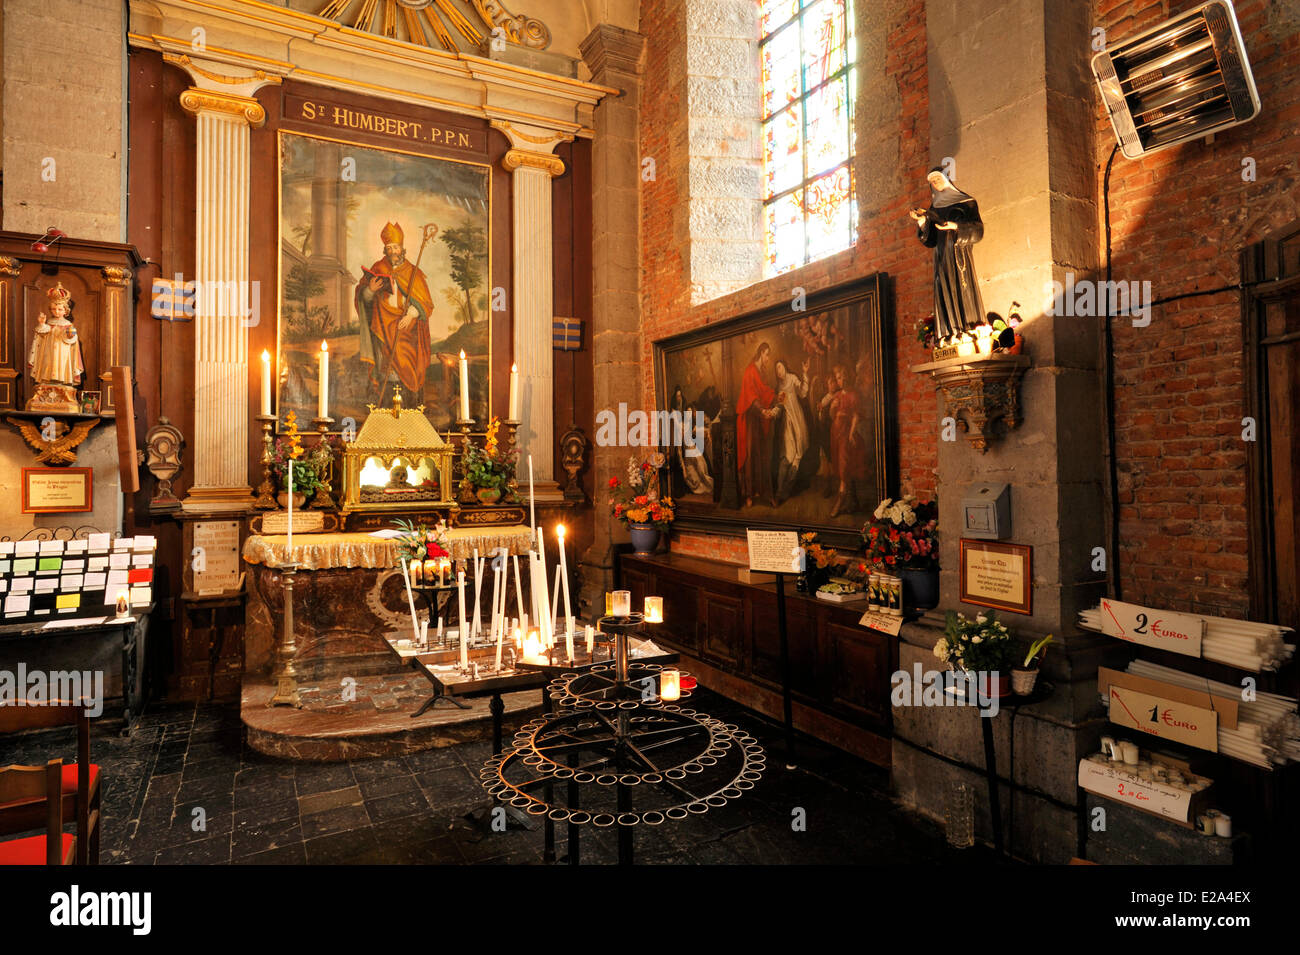 Cécile Humbert Design D'intérieur France Votive Stock Photos France Votive Stock Images Alamy